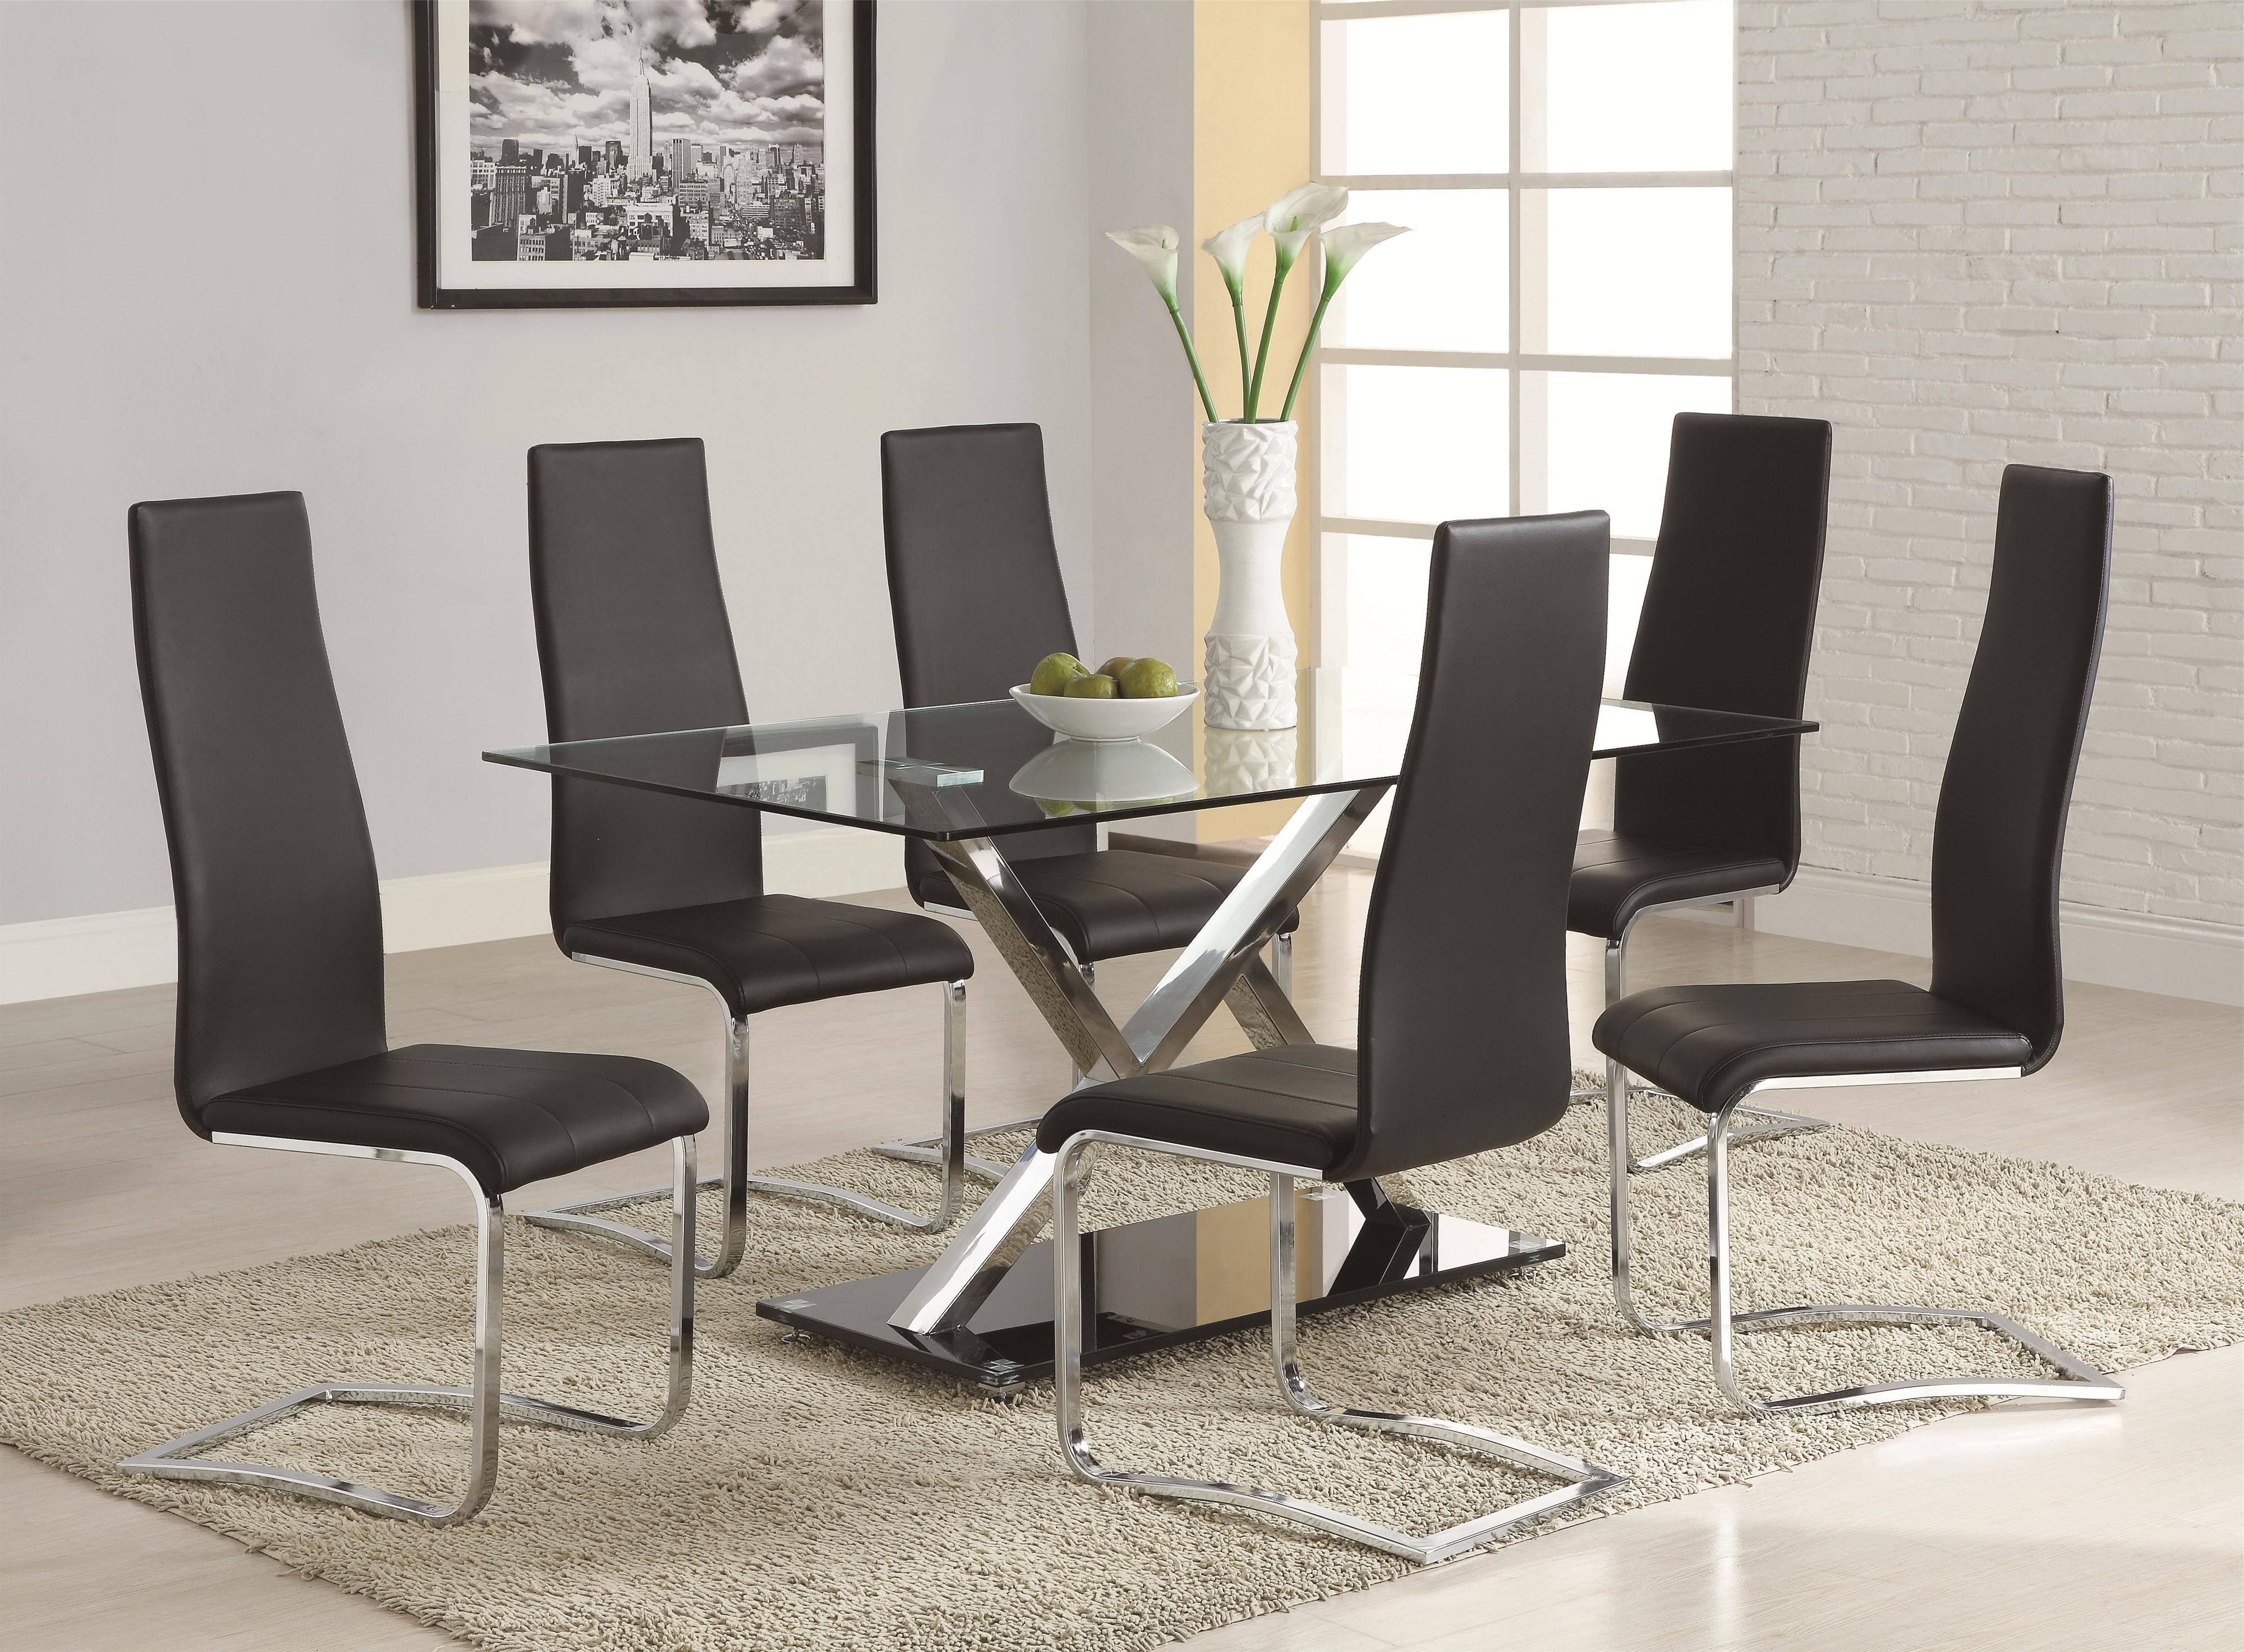 2018 Chrome Dining Room Sets inside Coaster Modern Dining Black Faux Leather Dining Chair With Chrome